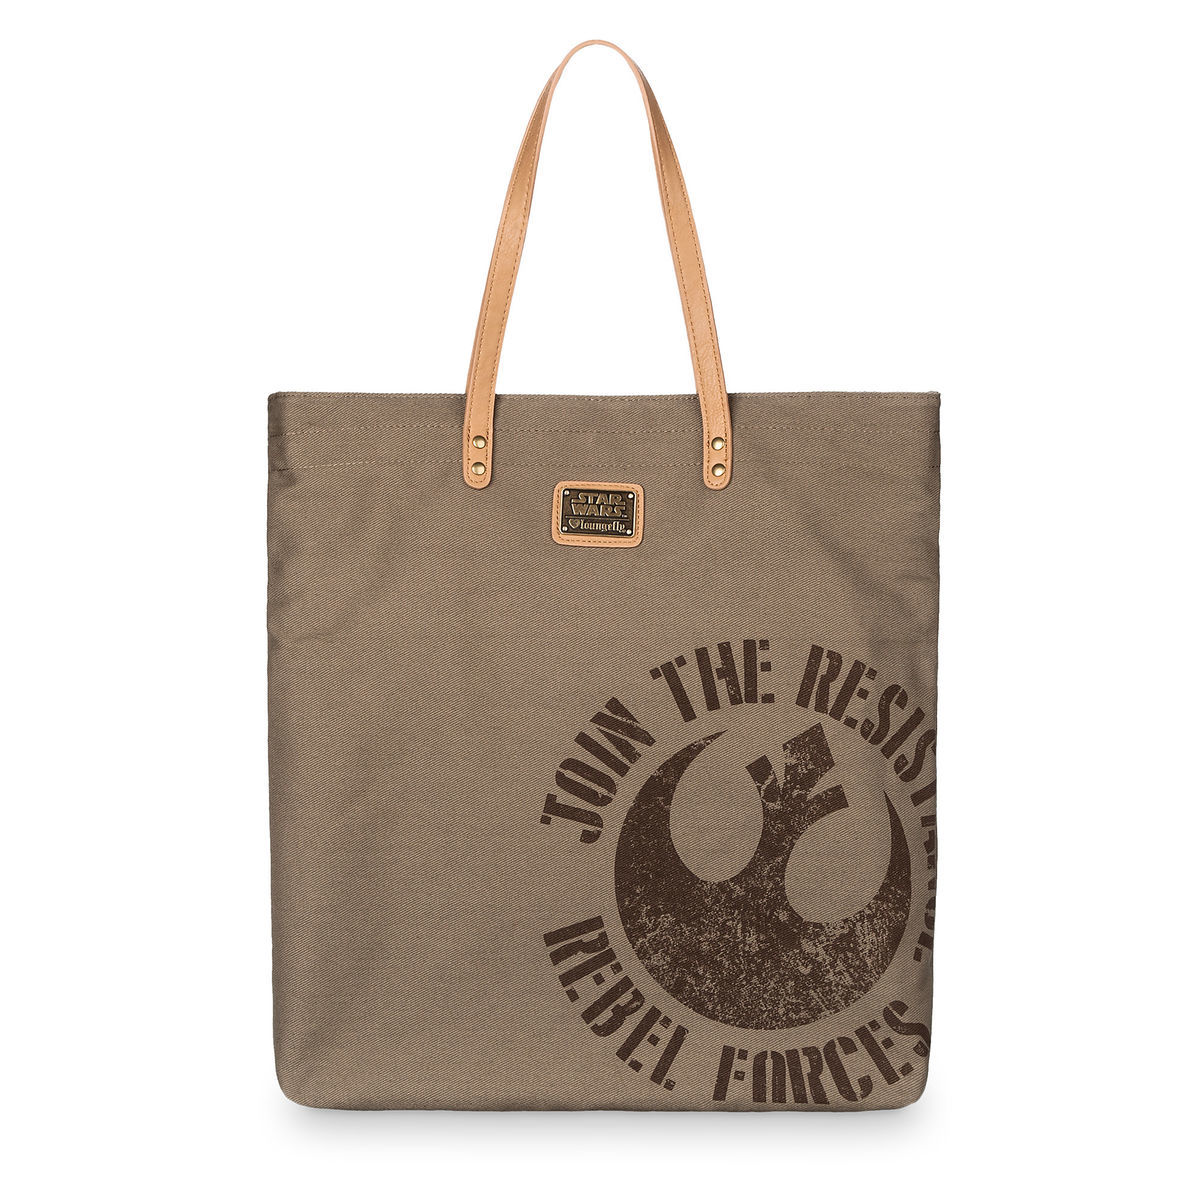 Product Image of Star Wars  Rebel Resistance Tote Bag by Loungefly   2 f2636339b5192